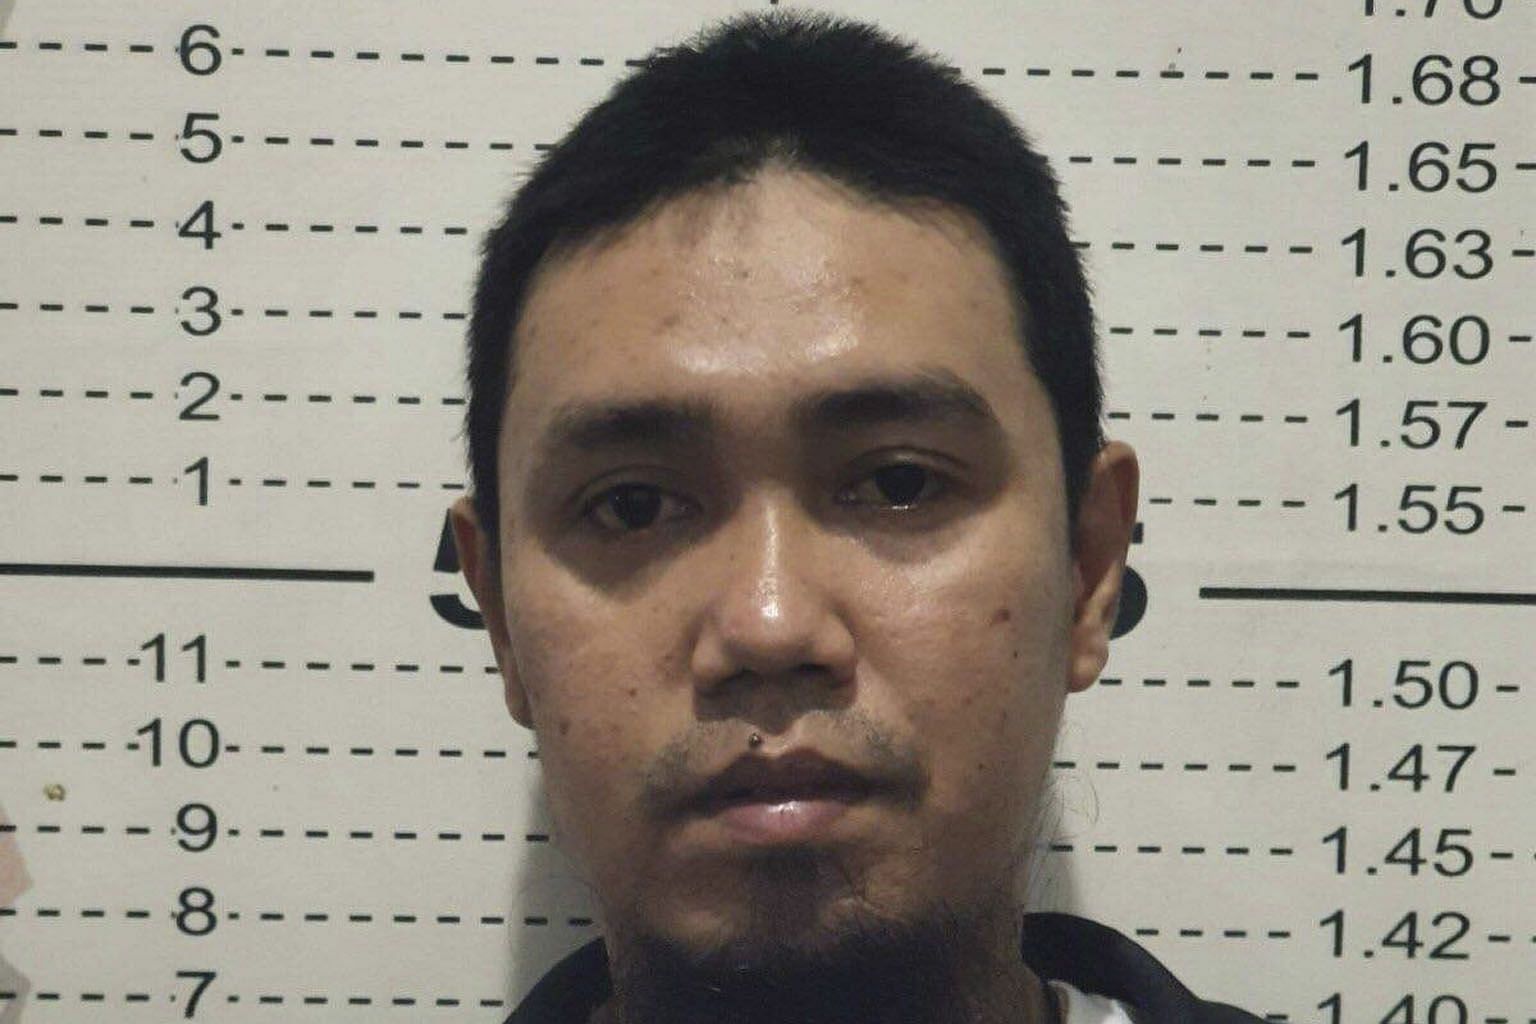 Idang Susukan was wanted for killings and kidnappings in the southern Philippines and the east coast of Sabah, Malaysia.